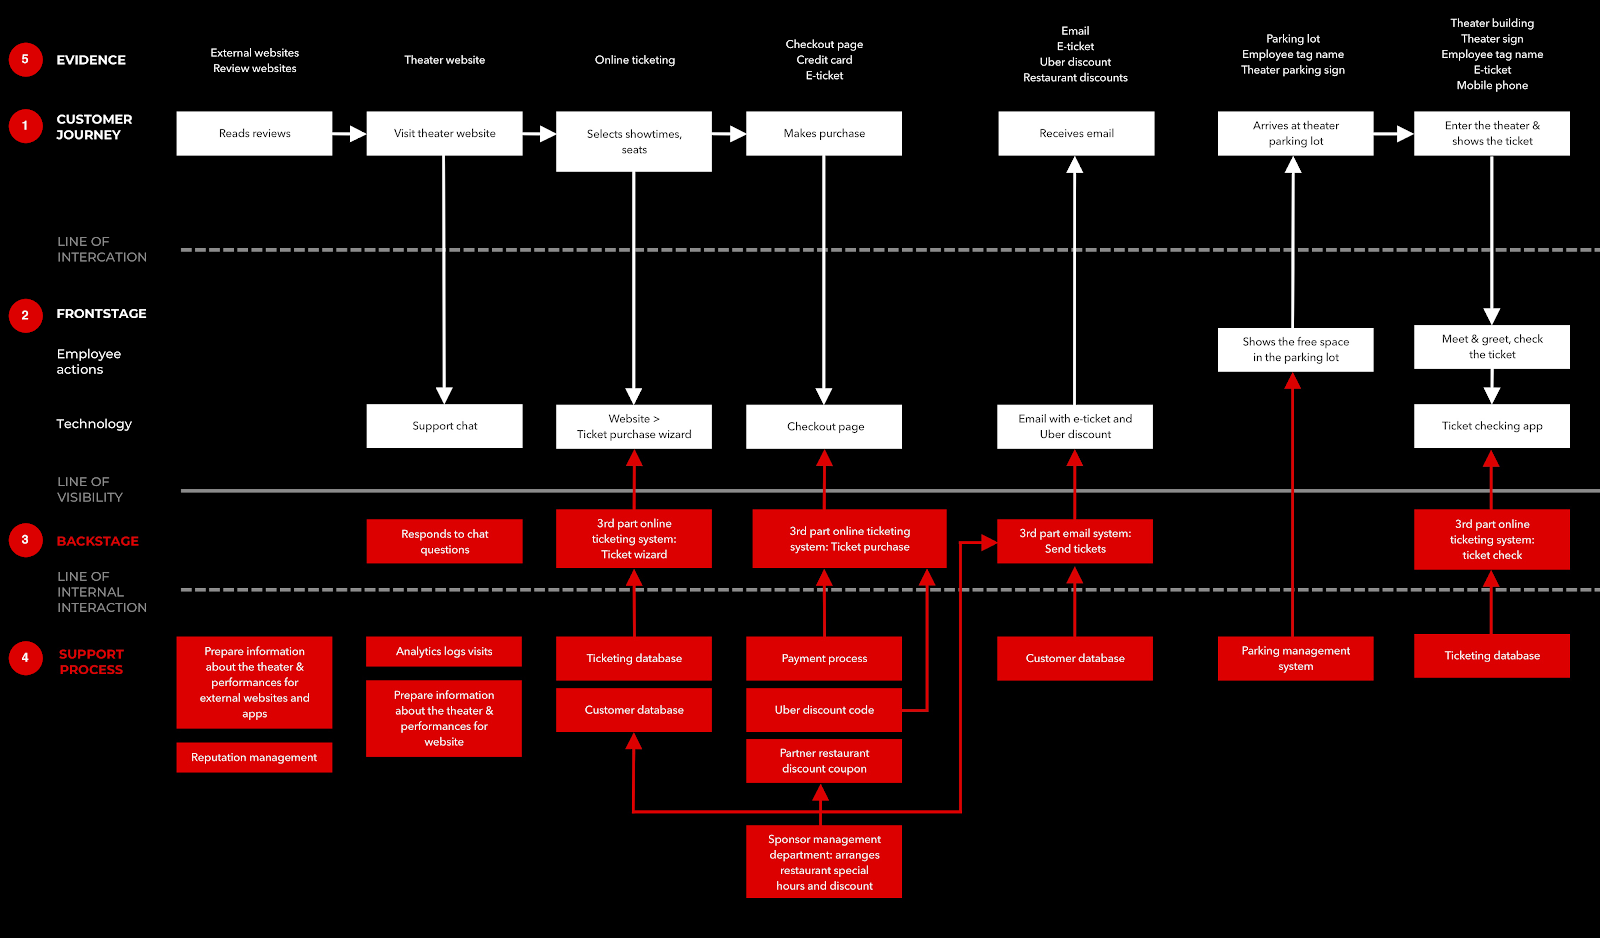 Dark service blueprint customer journey map example showing the backstage support processes behind theater ticket purchase.